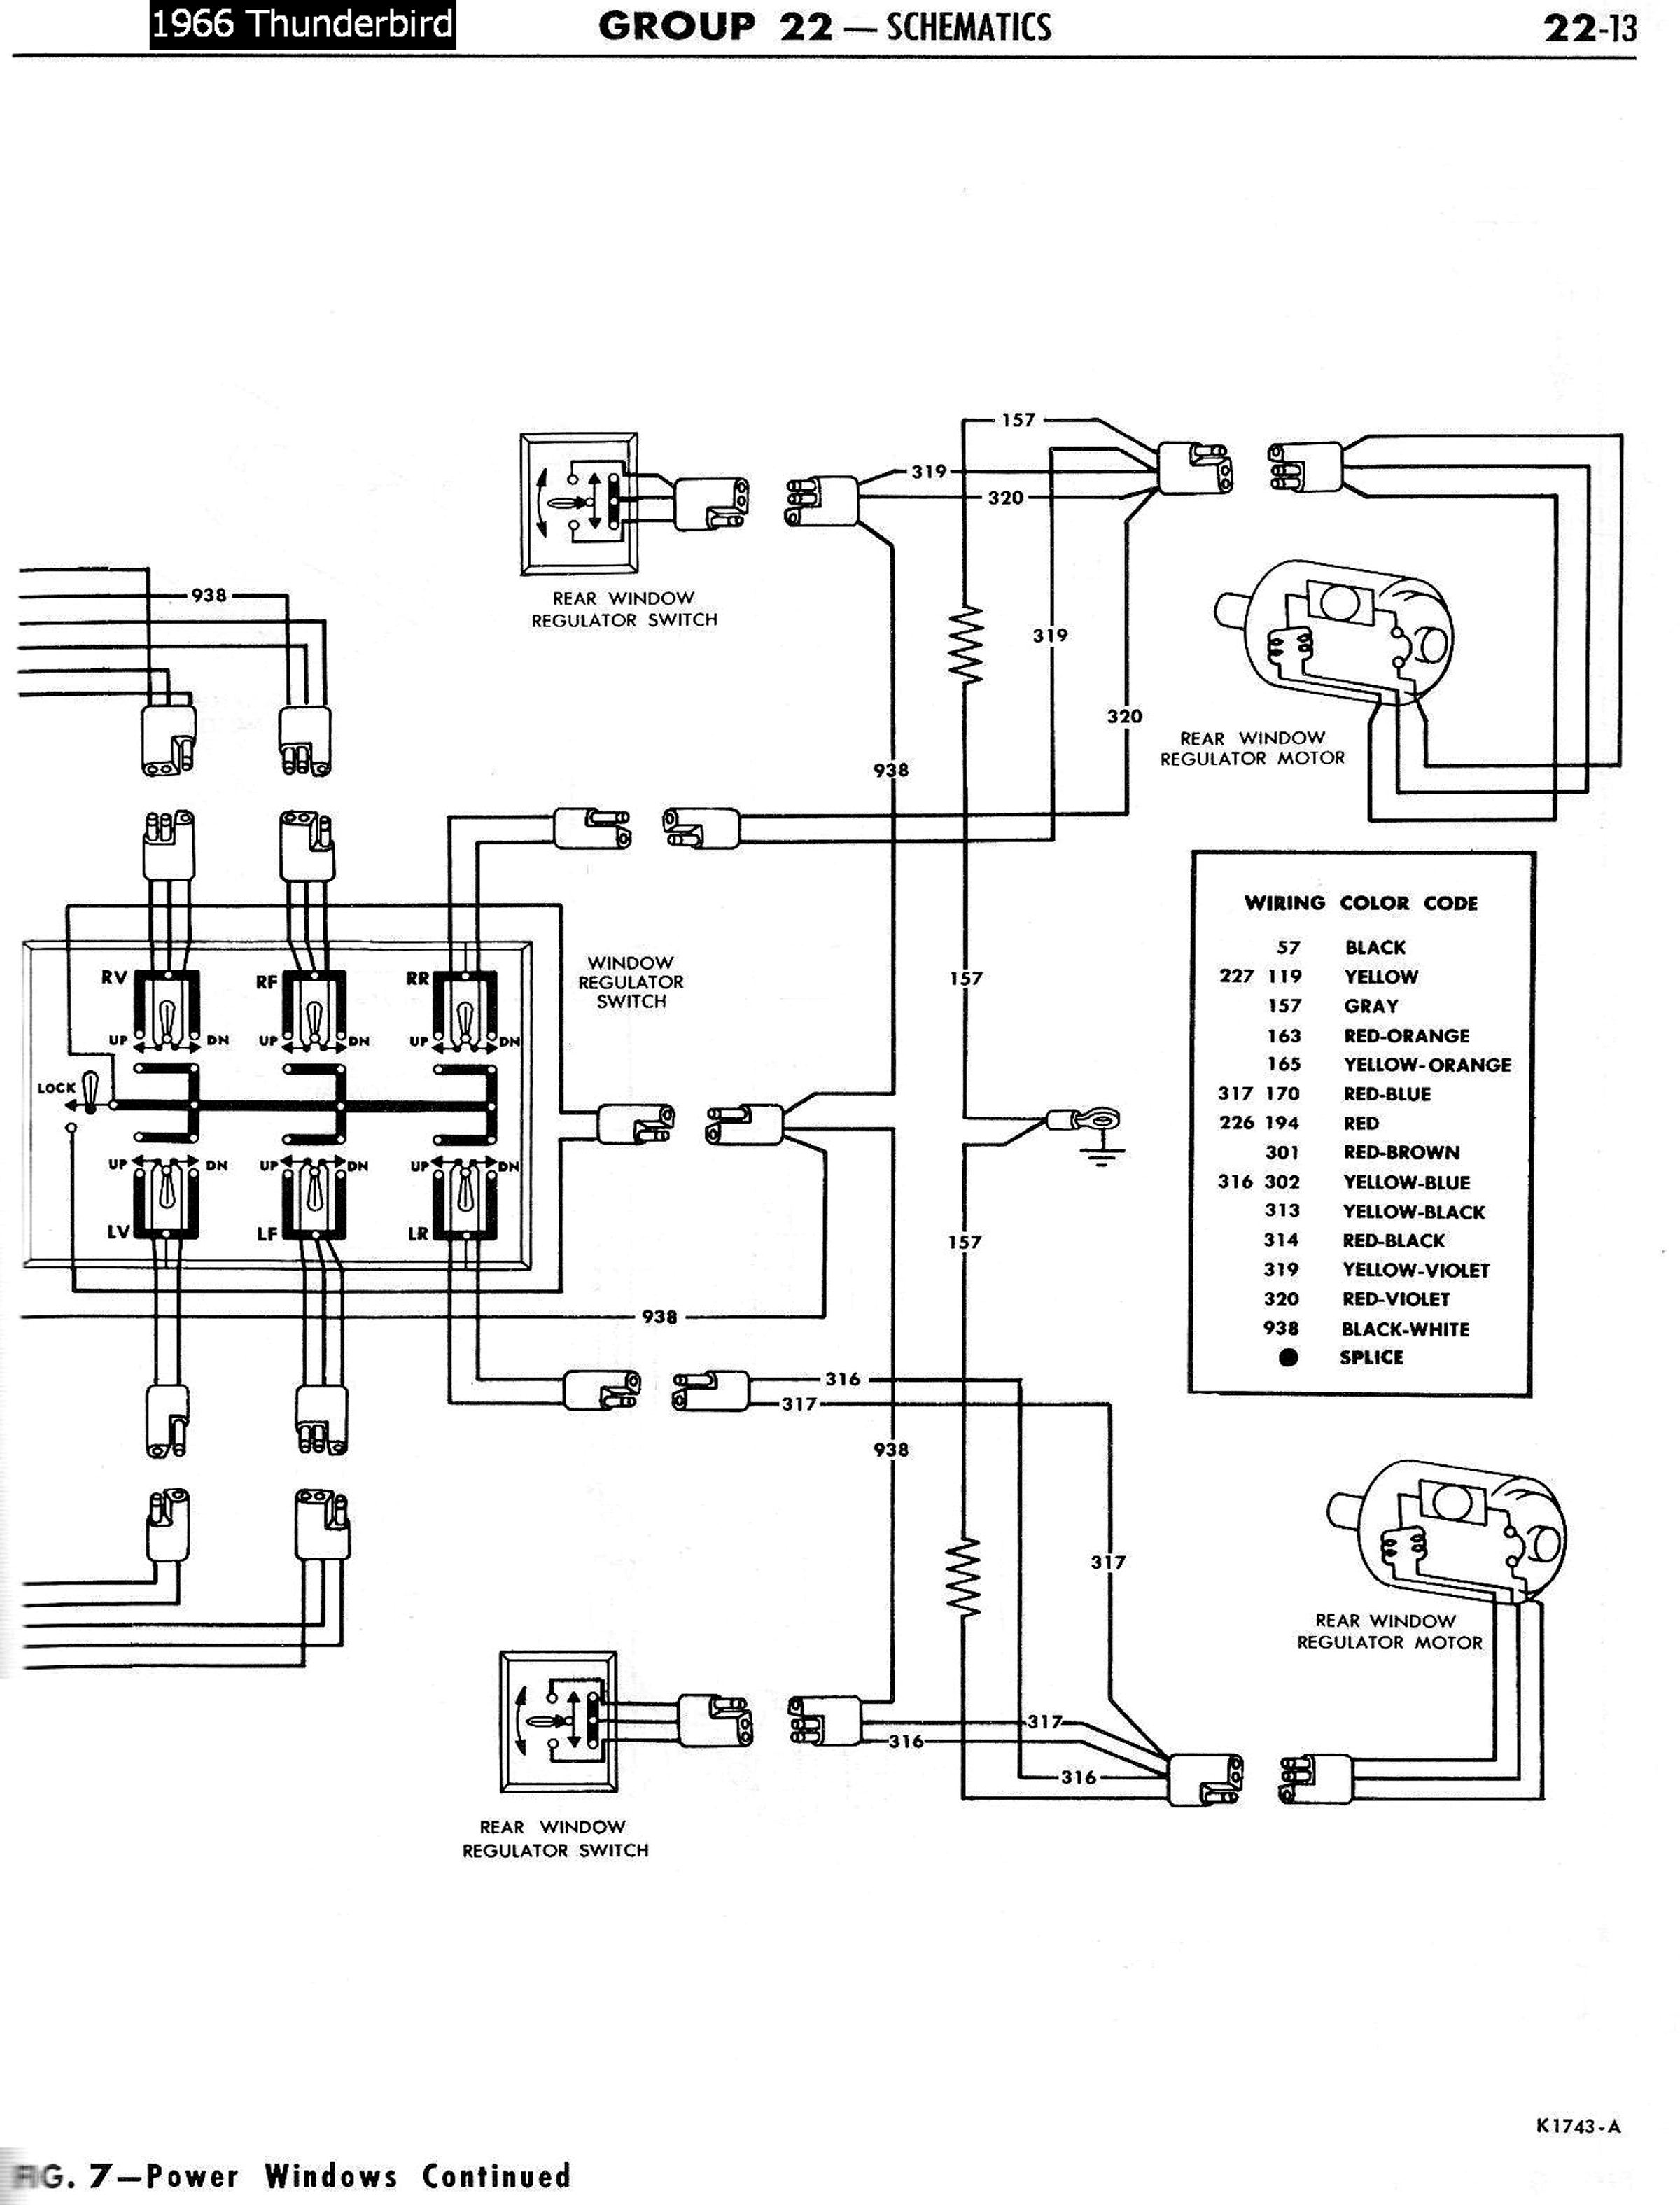 66TbirdPowerWindowsSchematicRight 1958 68 ford electrical schematics Equus Fuel Gauge Wiring Diagram at bakdesigns.co